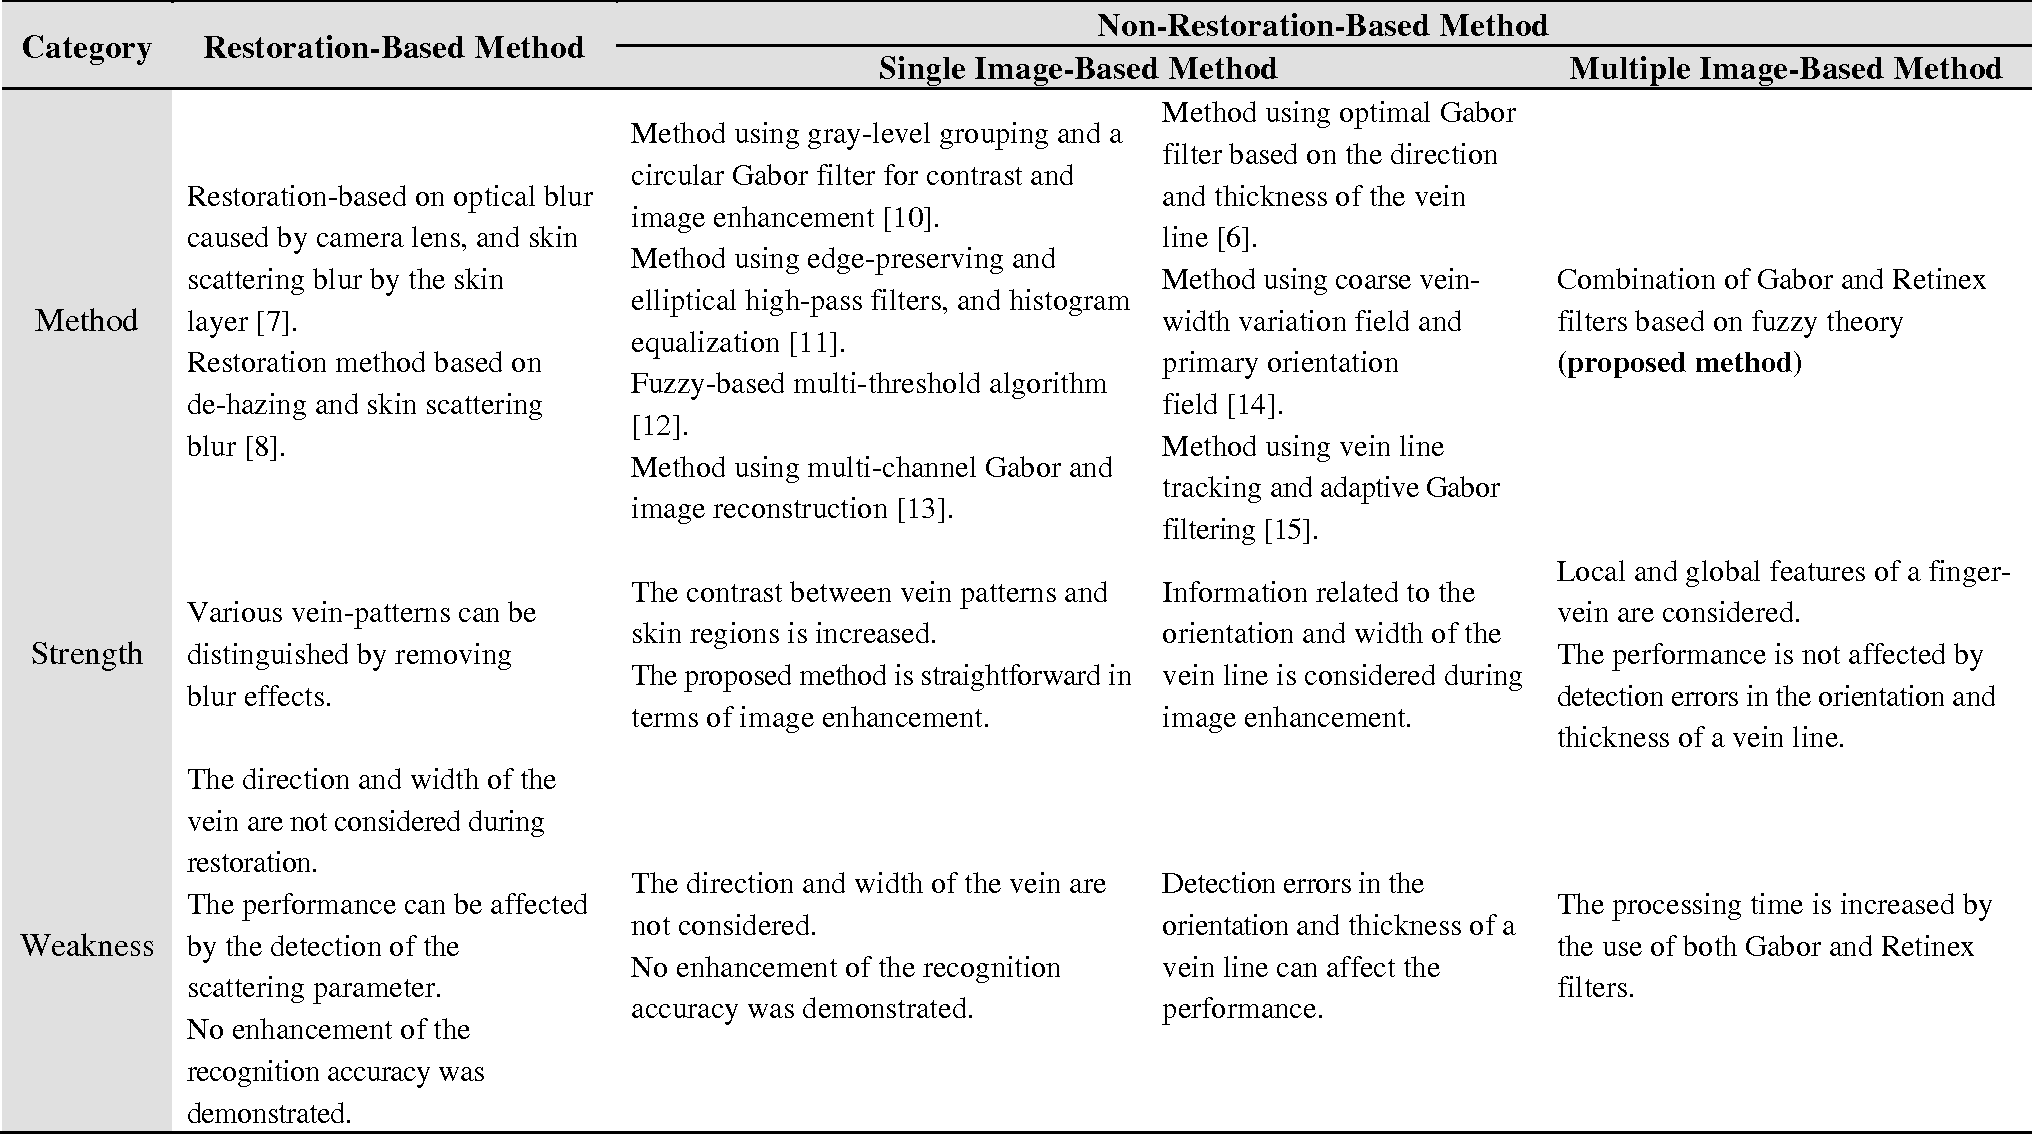 Table 1 from Finger-Vein Image Enhancement Using a Fuzzy-Based